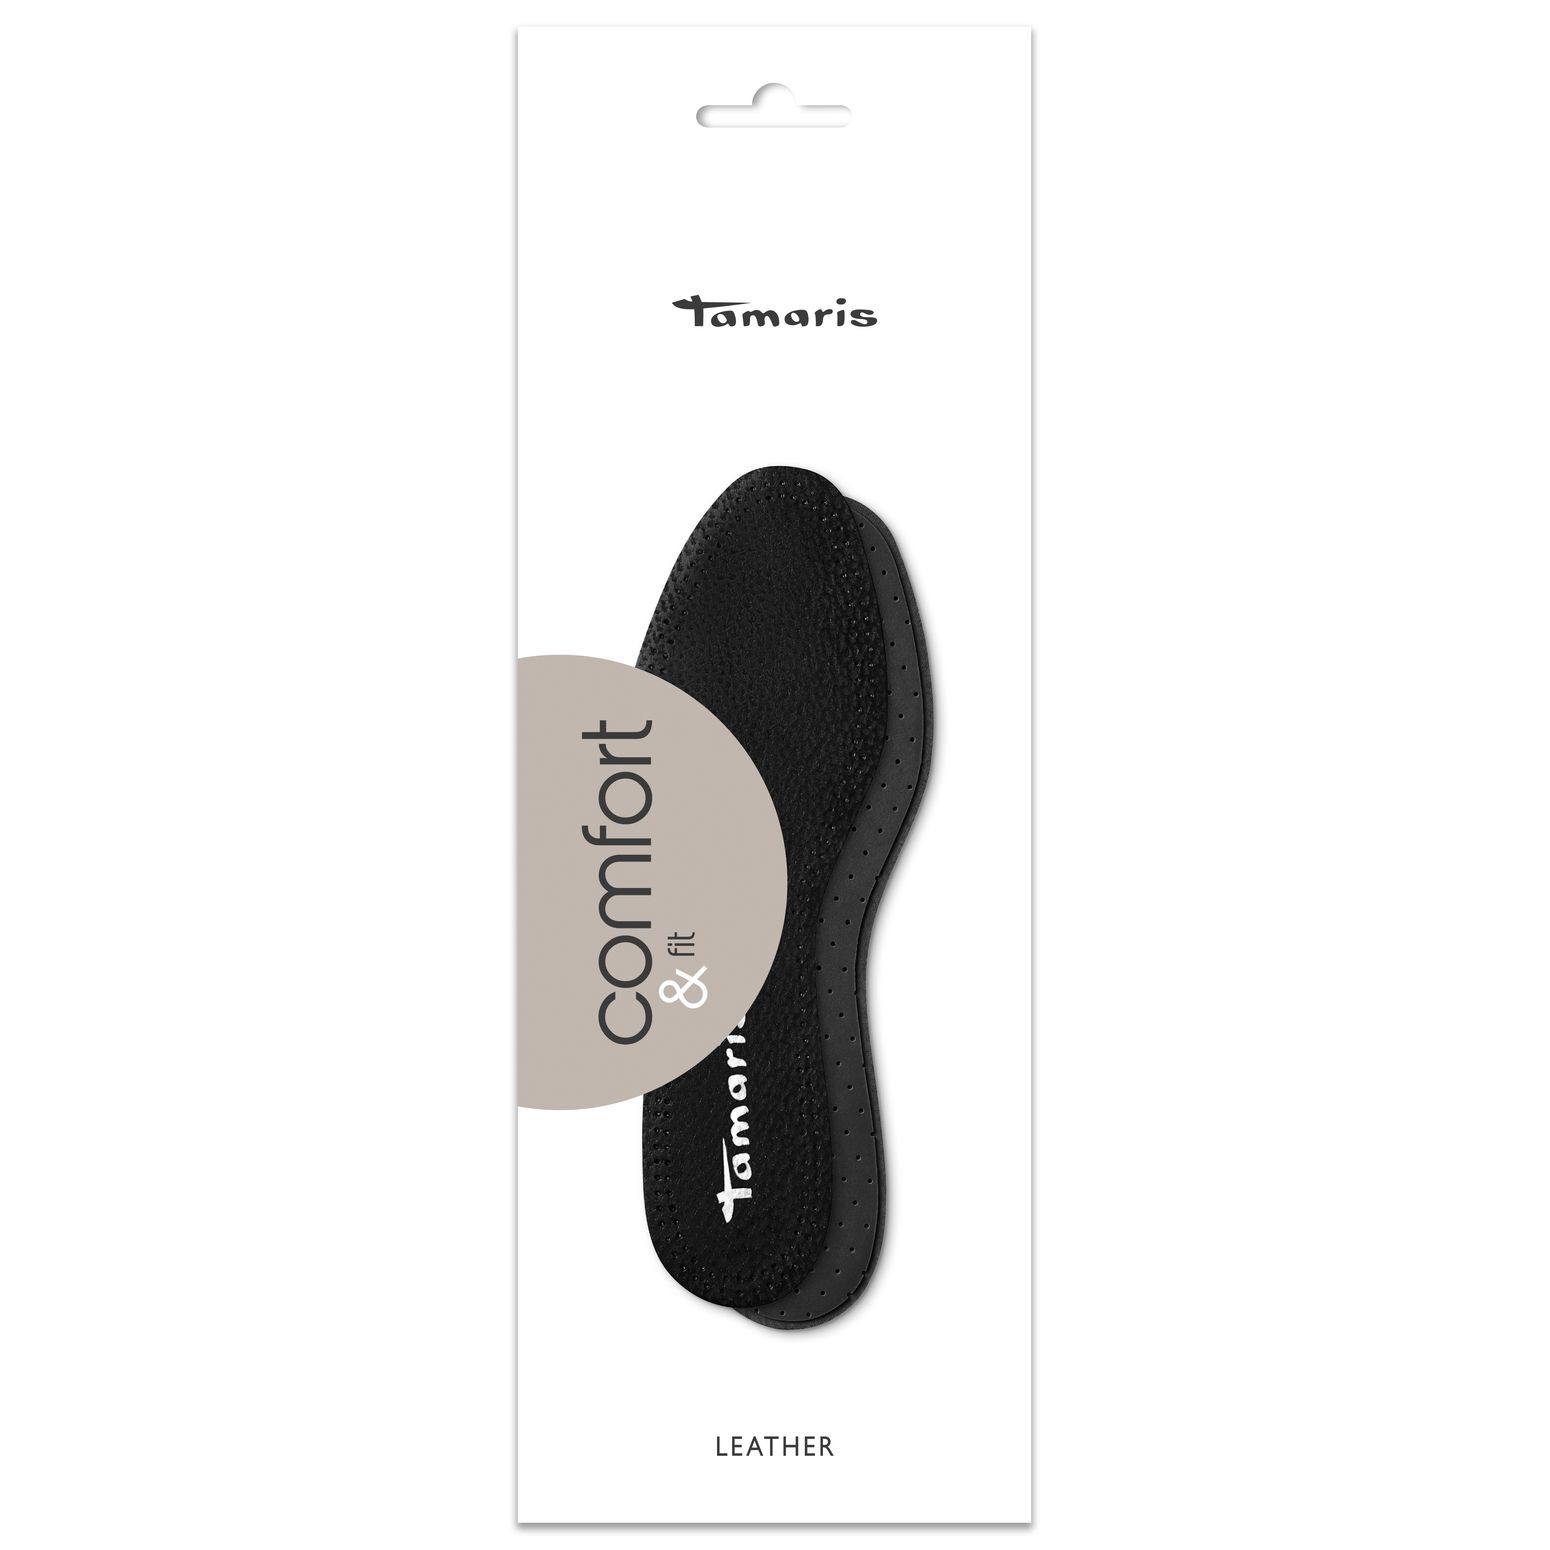 Buy Tamaris Shoe accessories online now!